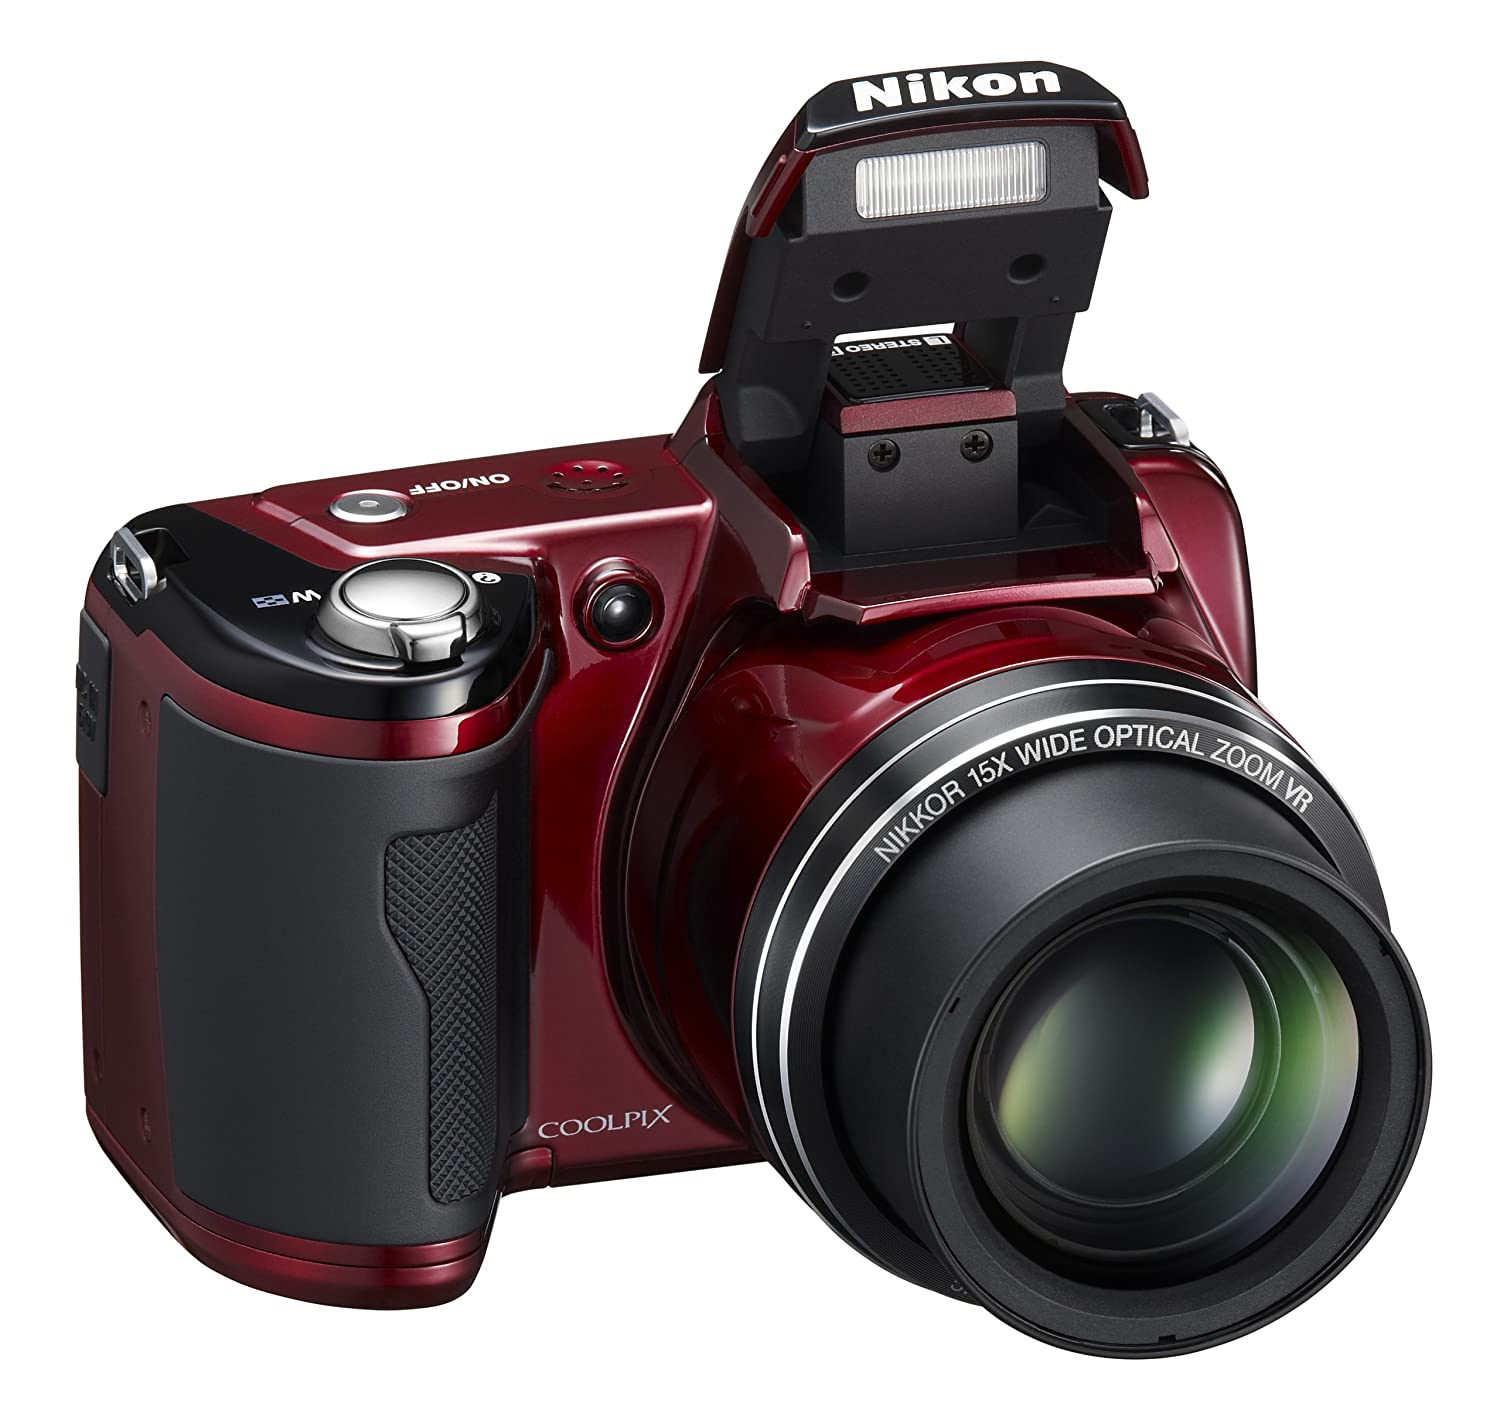 Amazon.com : Nikon Coolpix L110 12.1MP Digital Camera with 15x Optical  Vibration Reduction (VR) Zoom and 3.0-Inch LCD (Red) : Point And Shoot  Digital ...